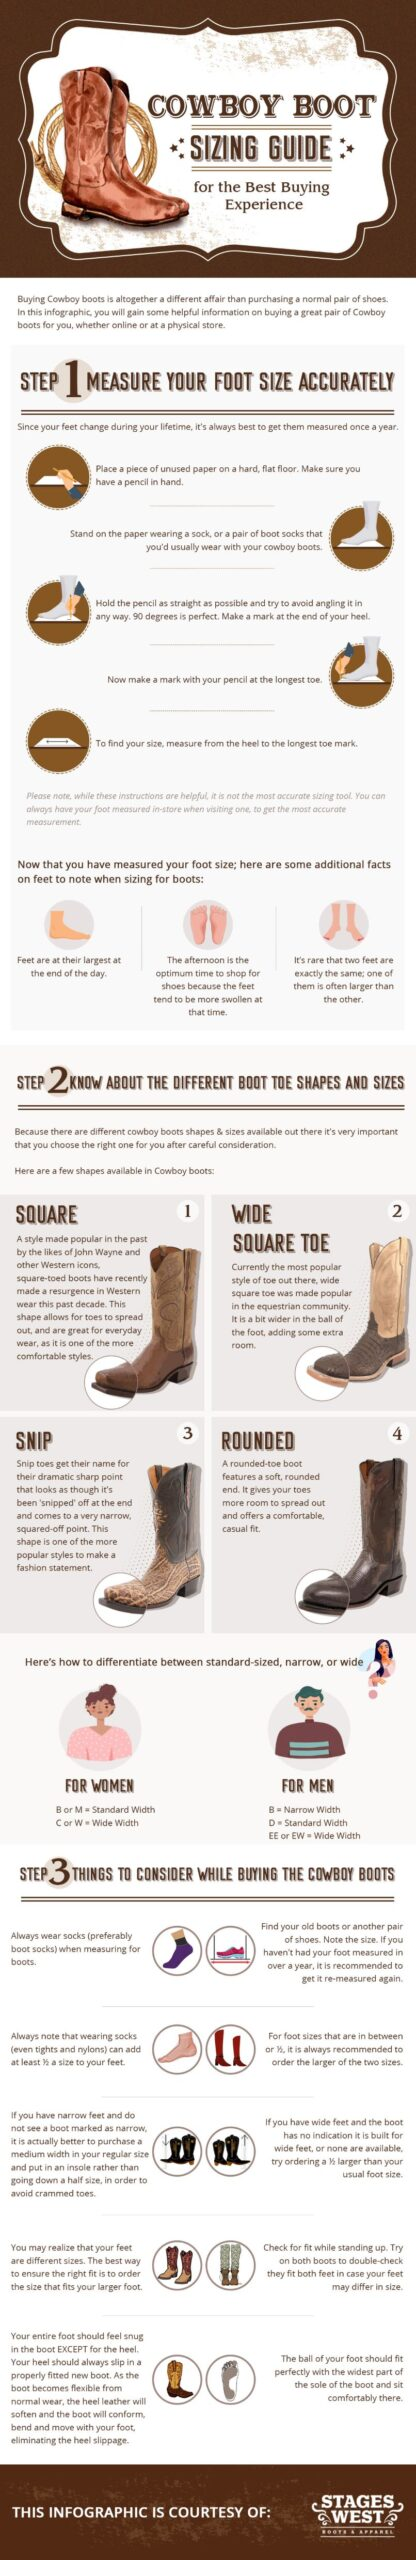 cowboy boot sizing guide infographic